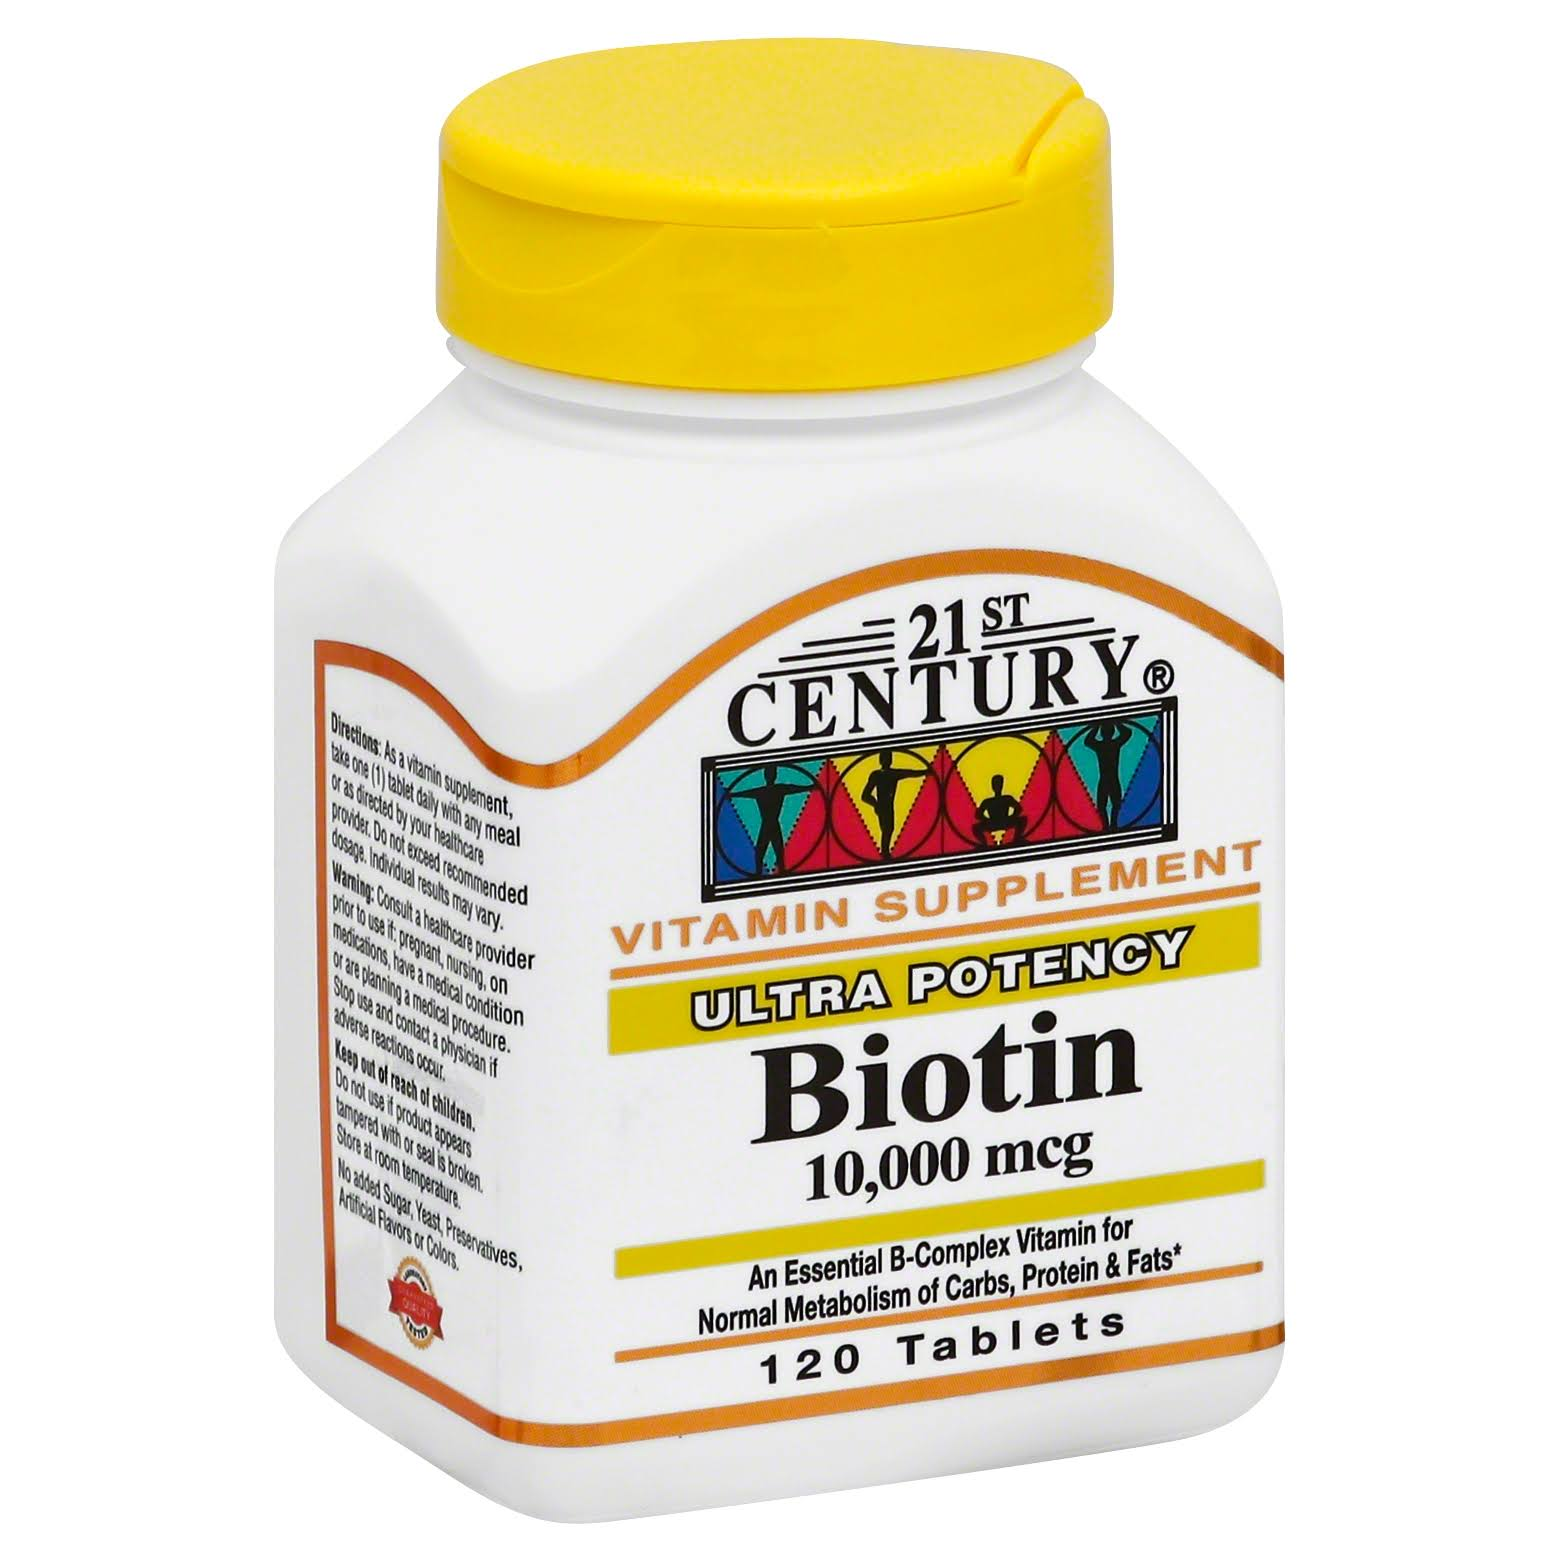 21st Century Biotin Vitamin Supplement - 10,000mcg, 120 Tablets